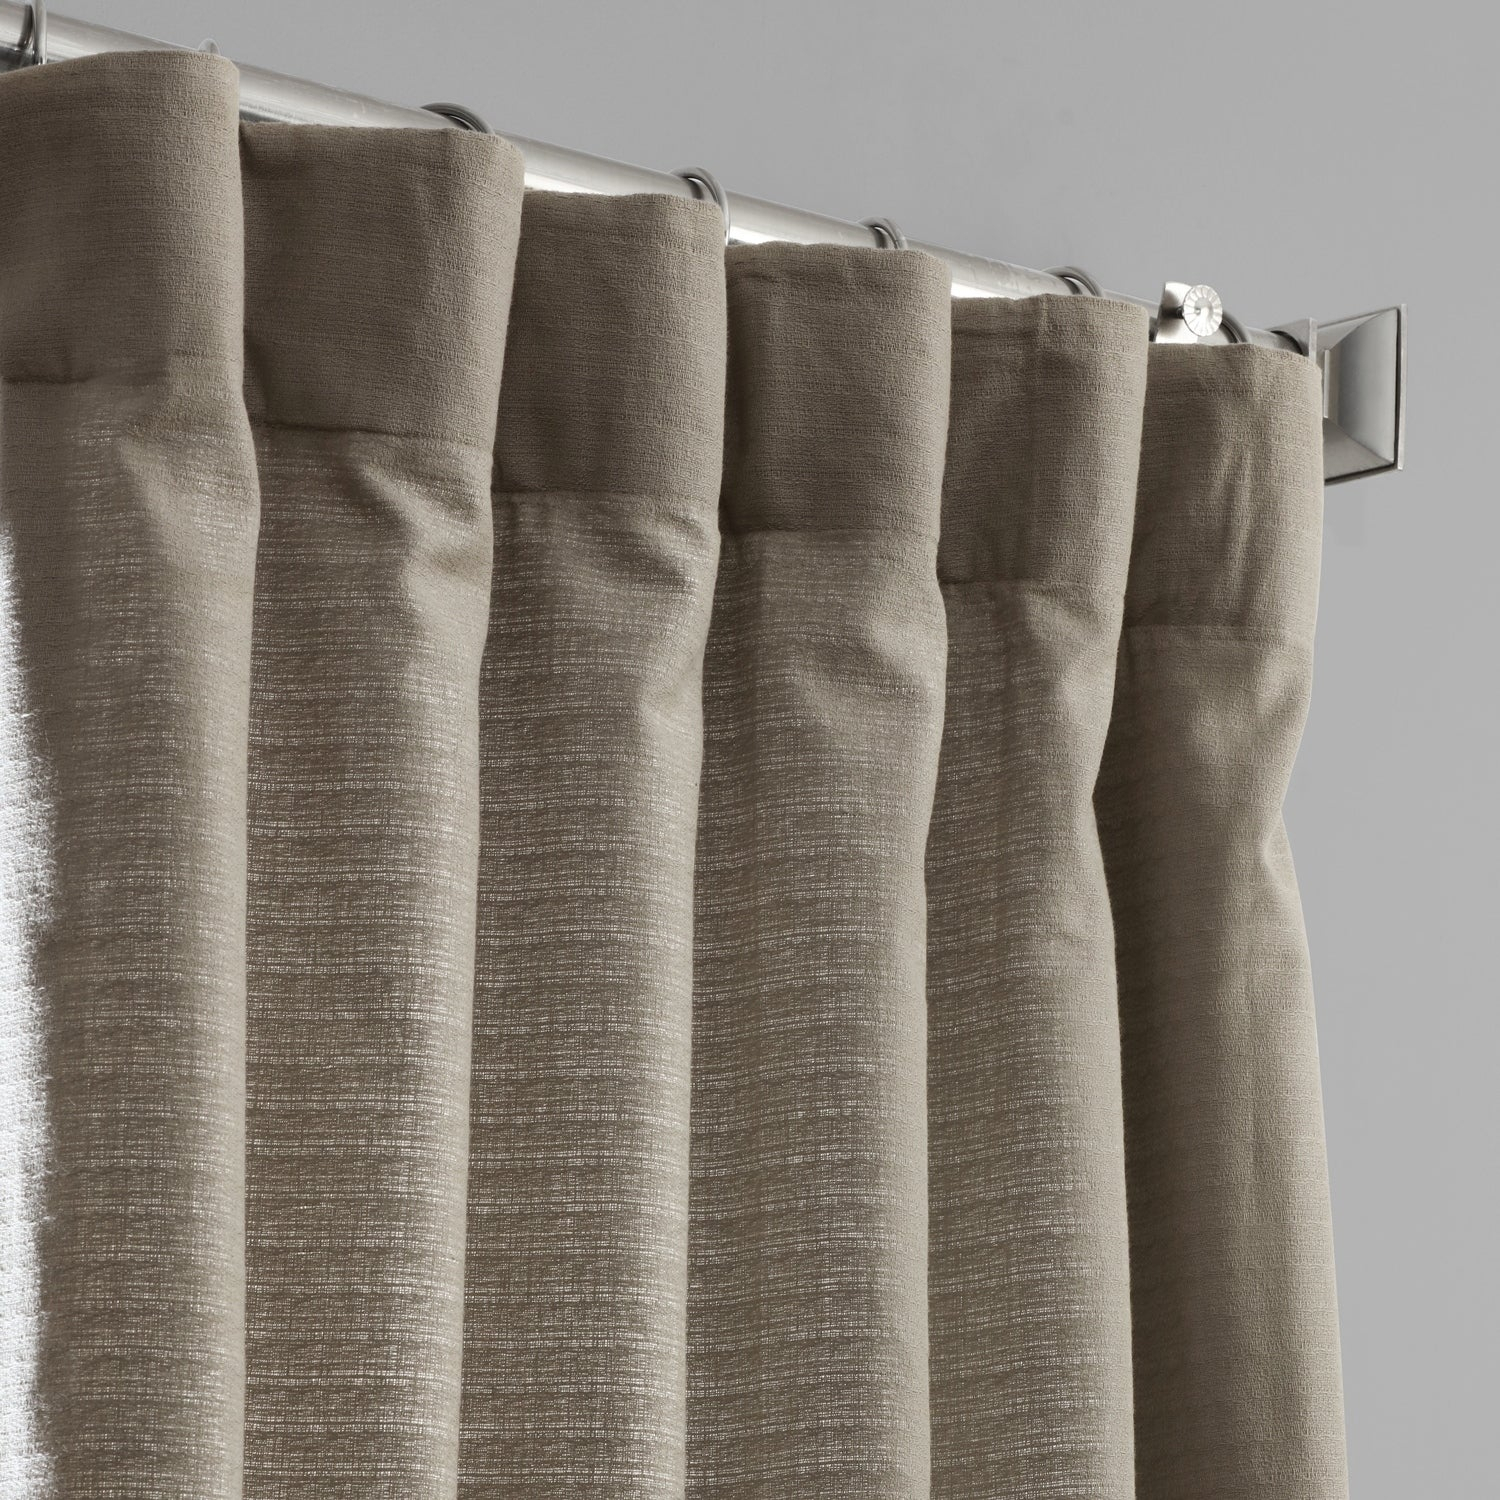 Shop Exclusive Fabrics Bark Weave Solid Cotton Curtain – On Regarding Bark Weave Solid Cotton Curtains (View 10 of 20)